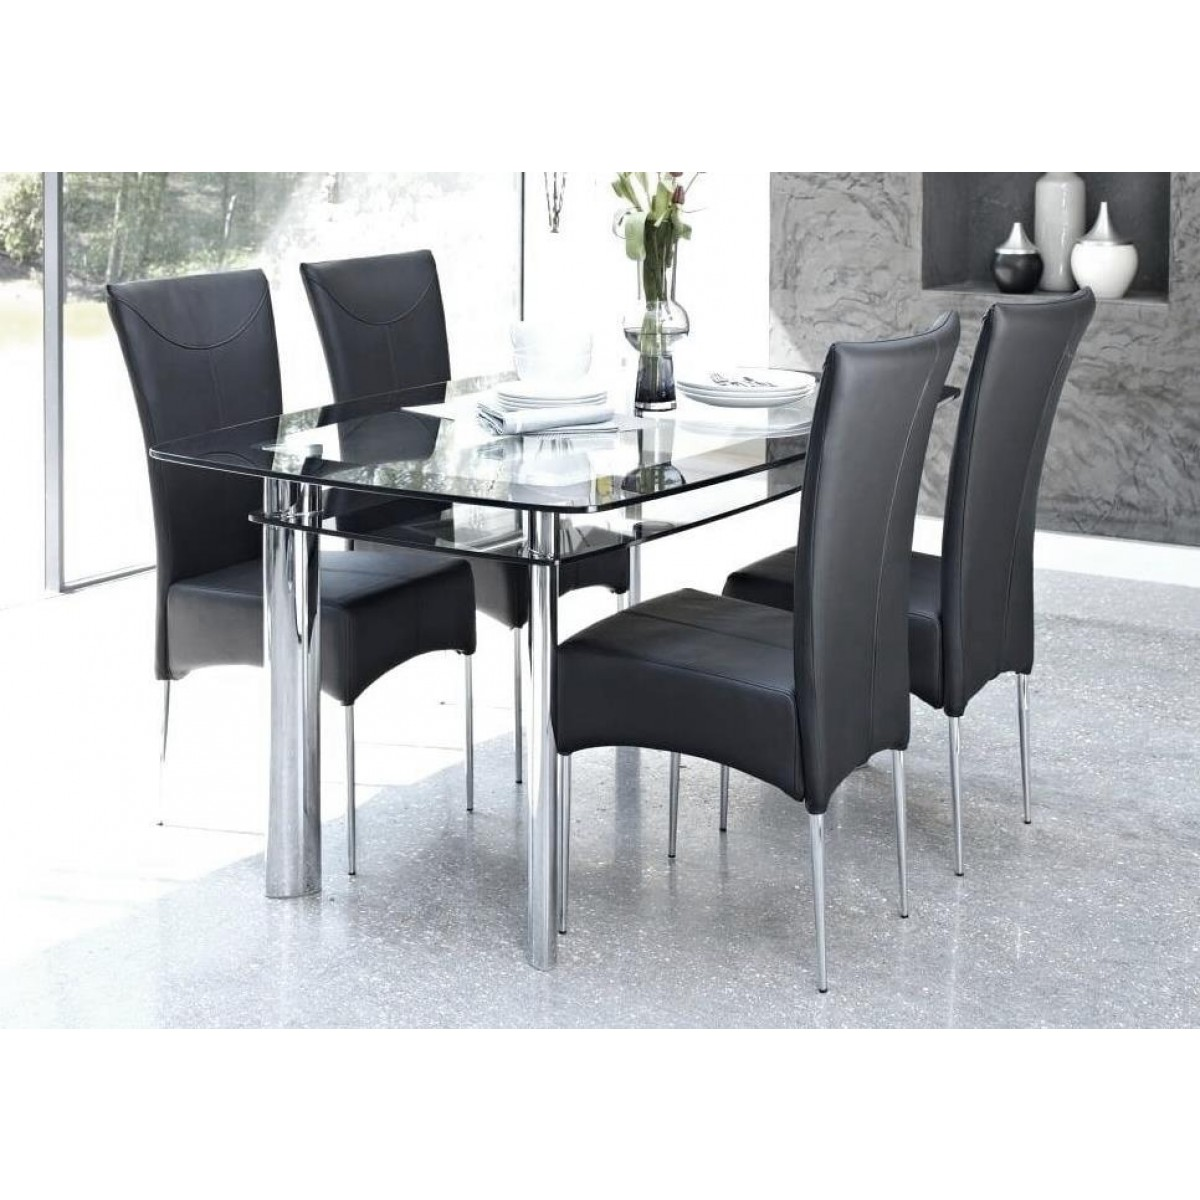 Modern Home Angels Small Glass Dining Table Clear Black Border Free Next Day Delivery